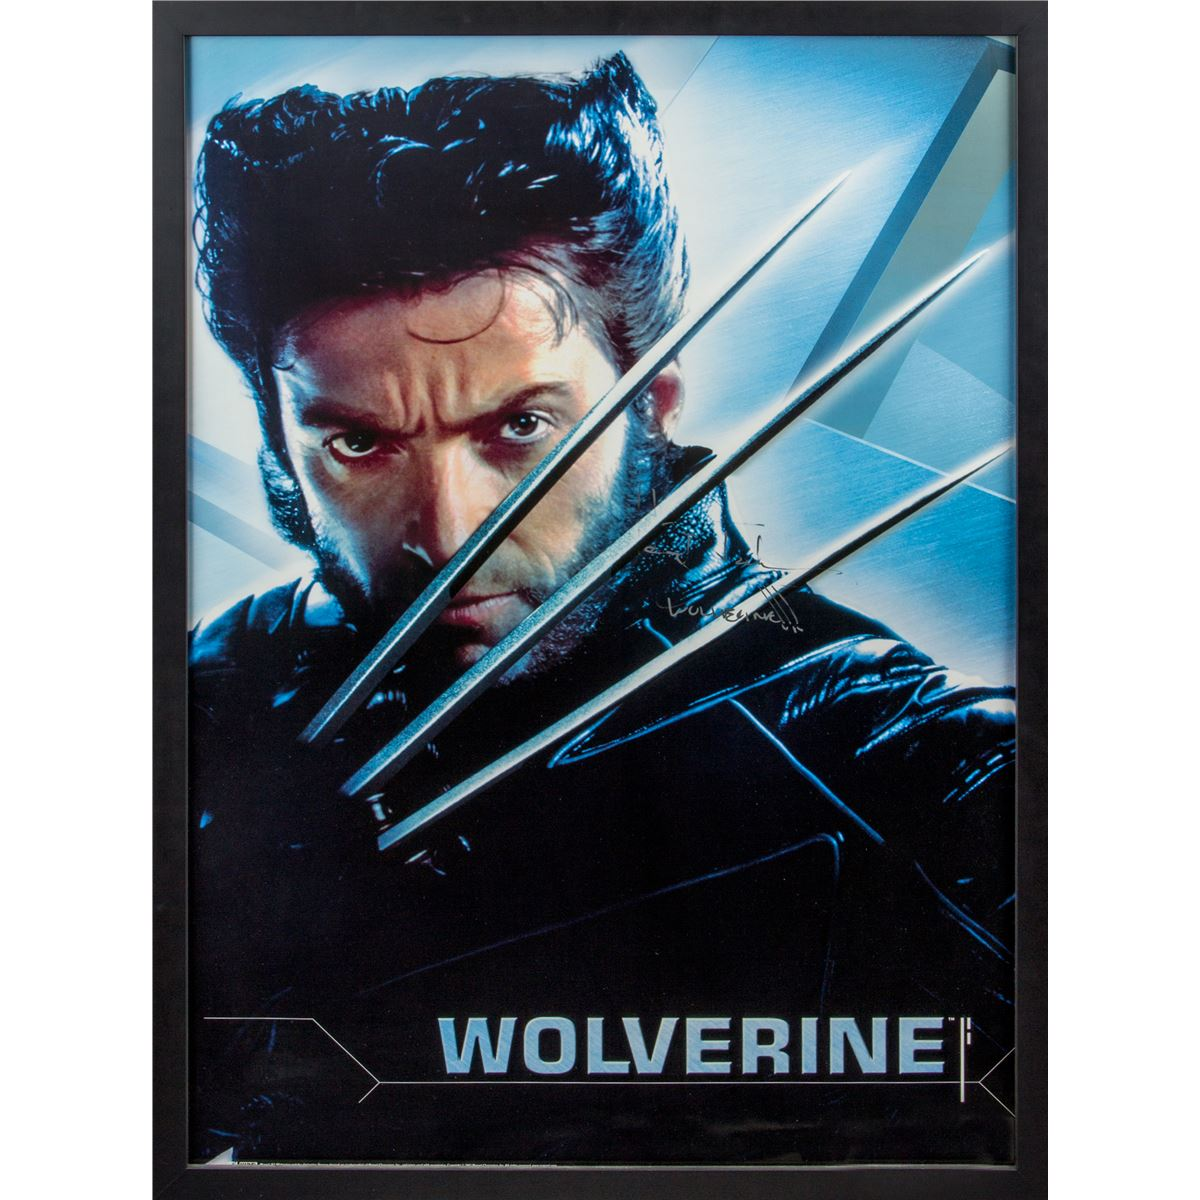 x men 2 original wolverine character poster signed by hugh jackman. Black Bedroom Furniture Sets. Home Design Ideas